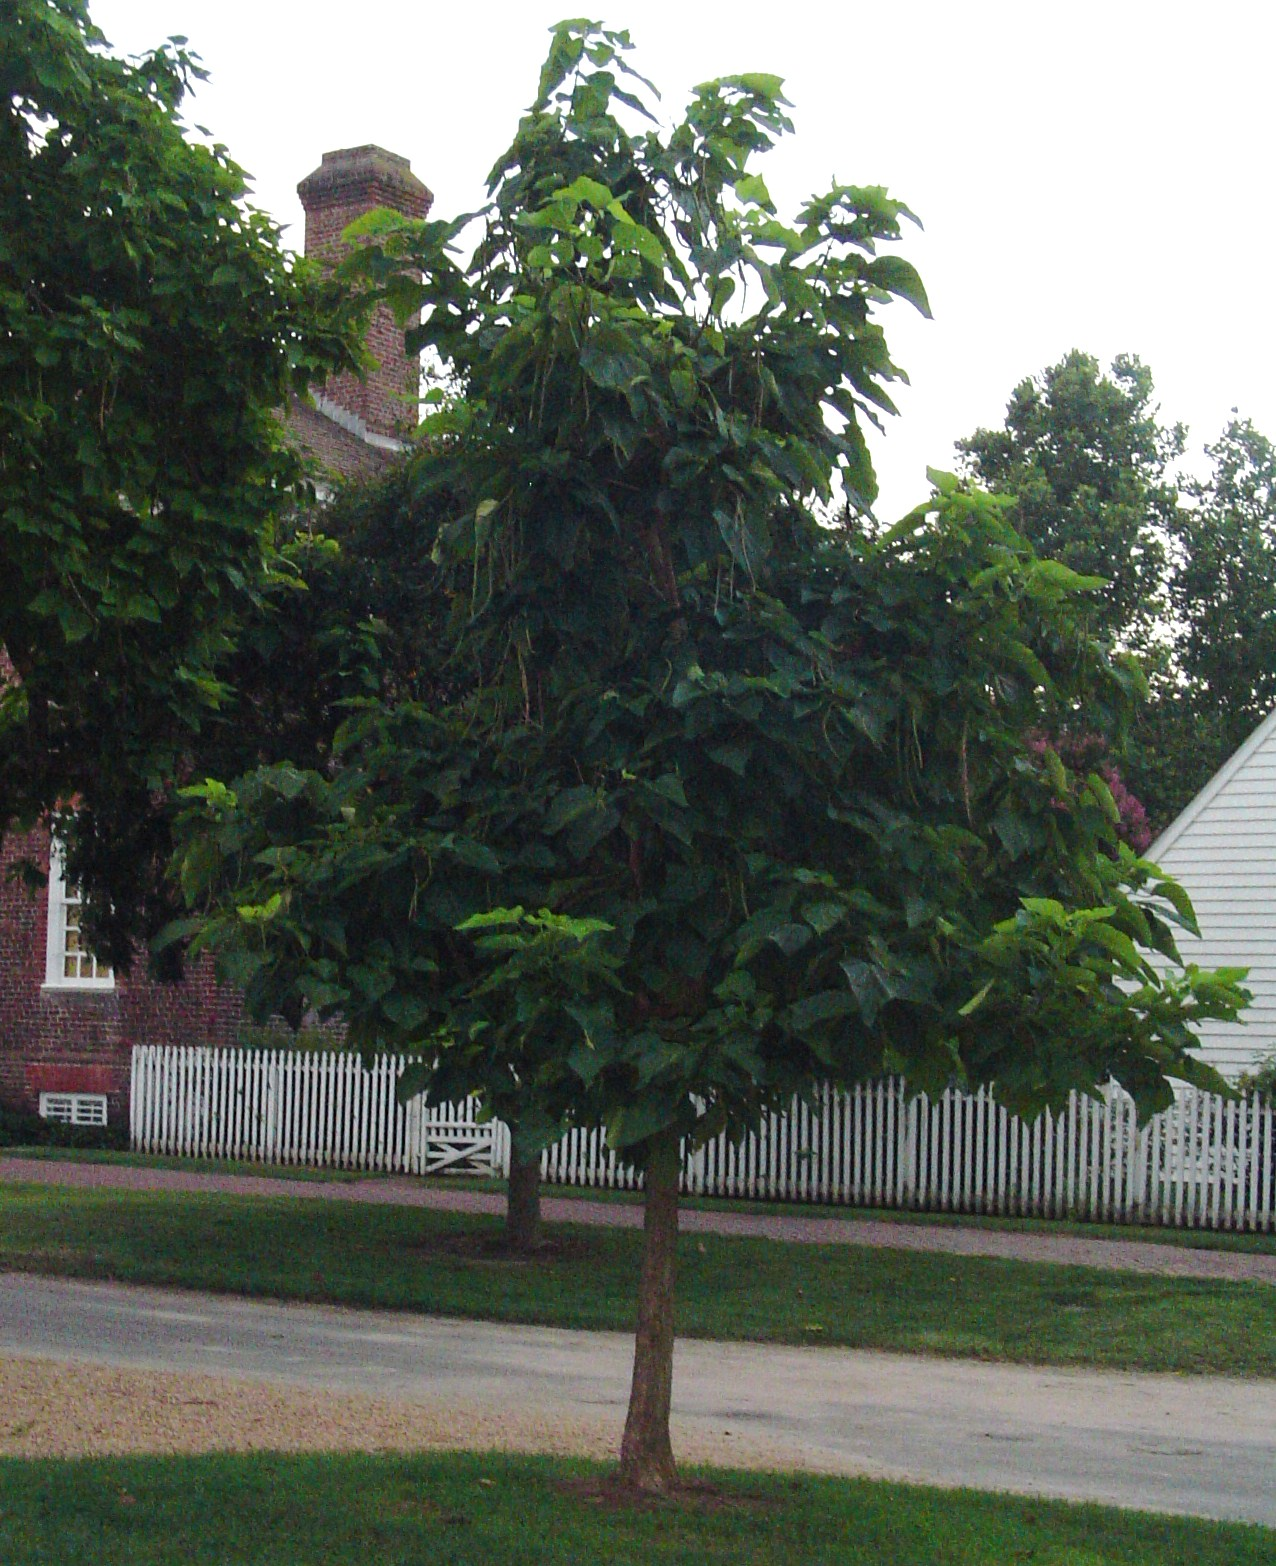 Catalpa, or Monkey Cigar tree, on the Palace Green at Colonial Williamsburg. The lawn is lined with Catalpa trees of various ages, and they are absolutely stunning when in bloom.